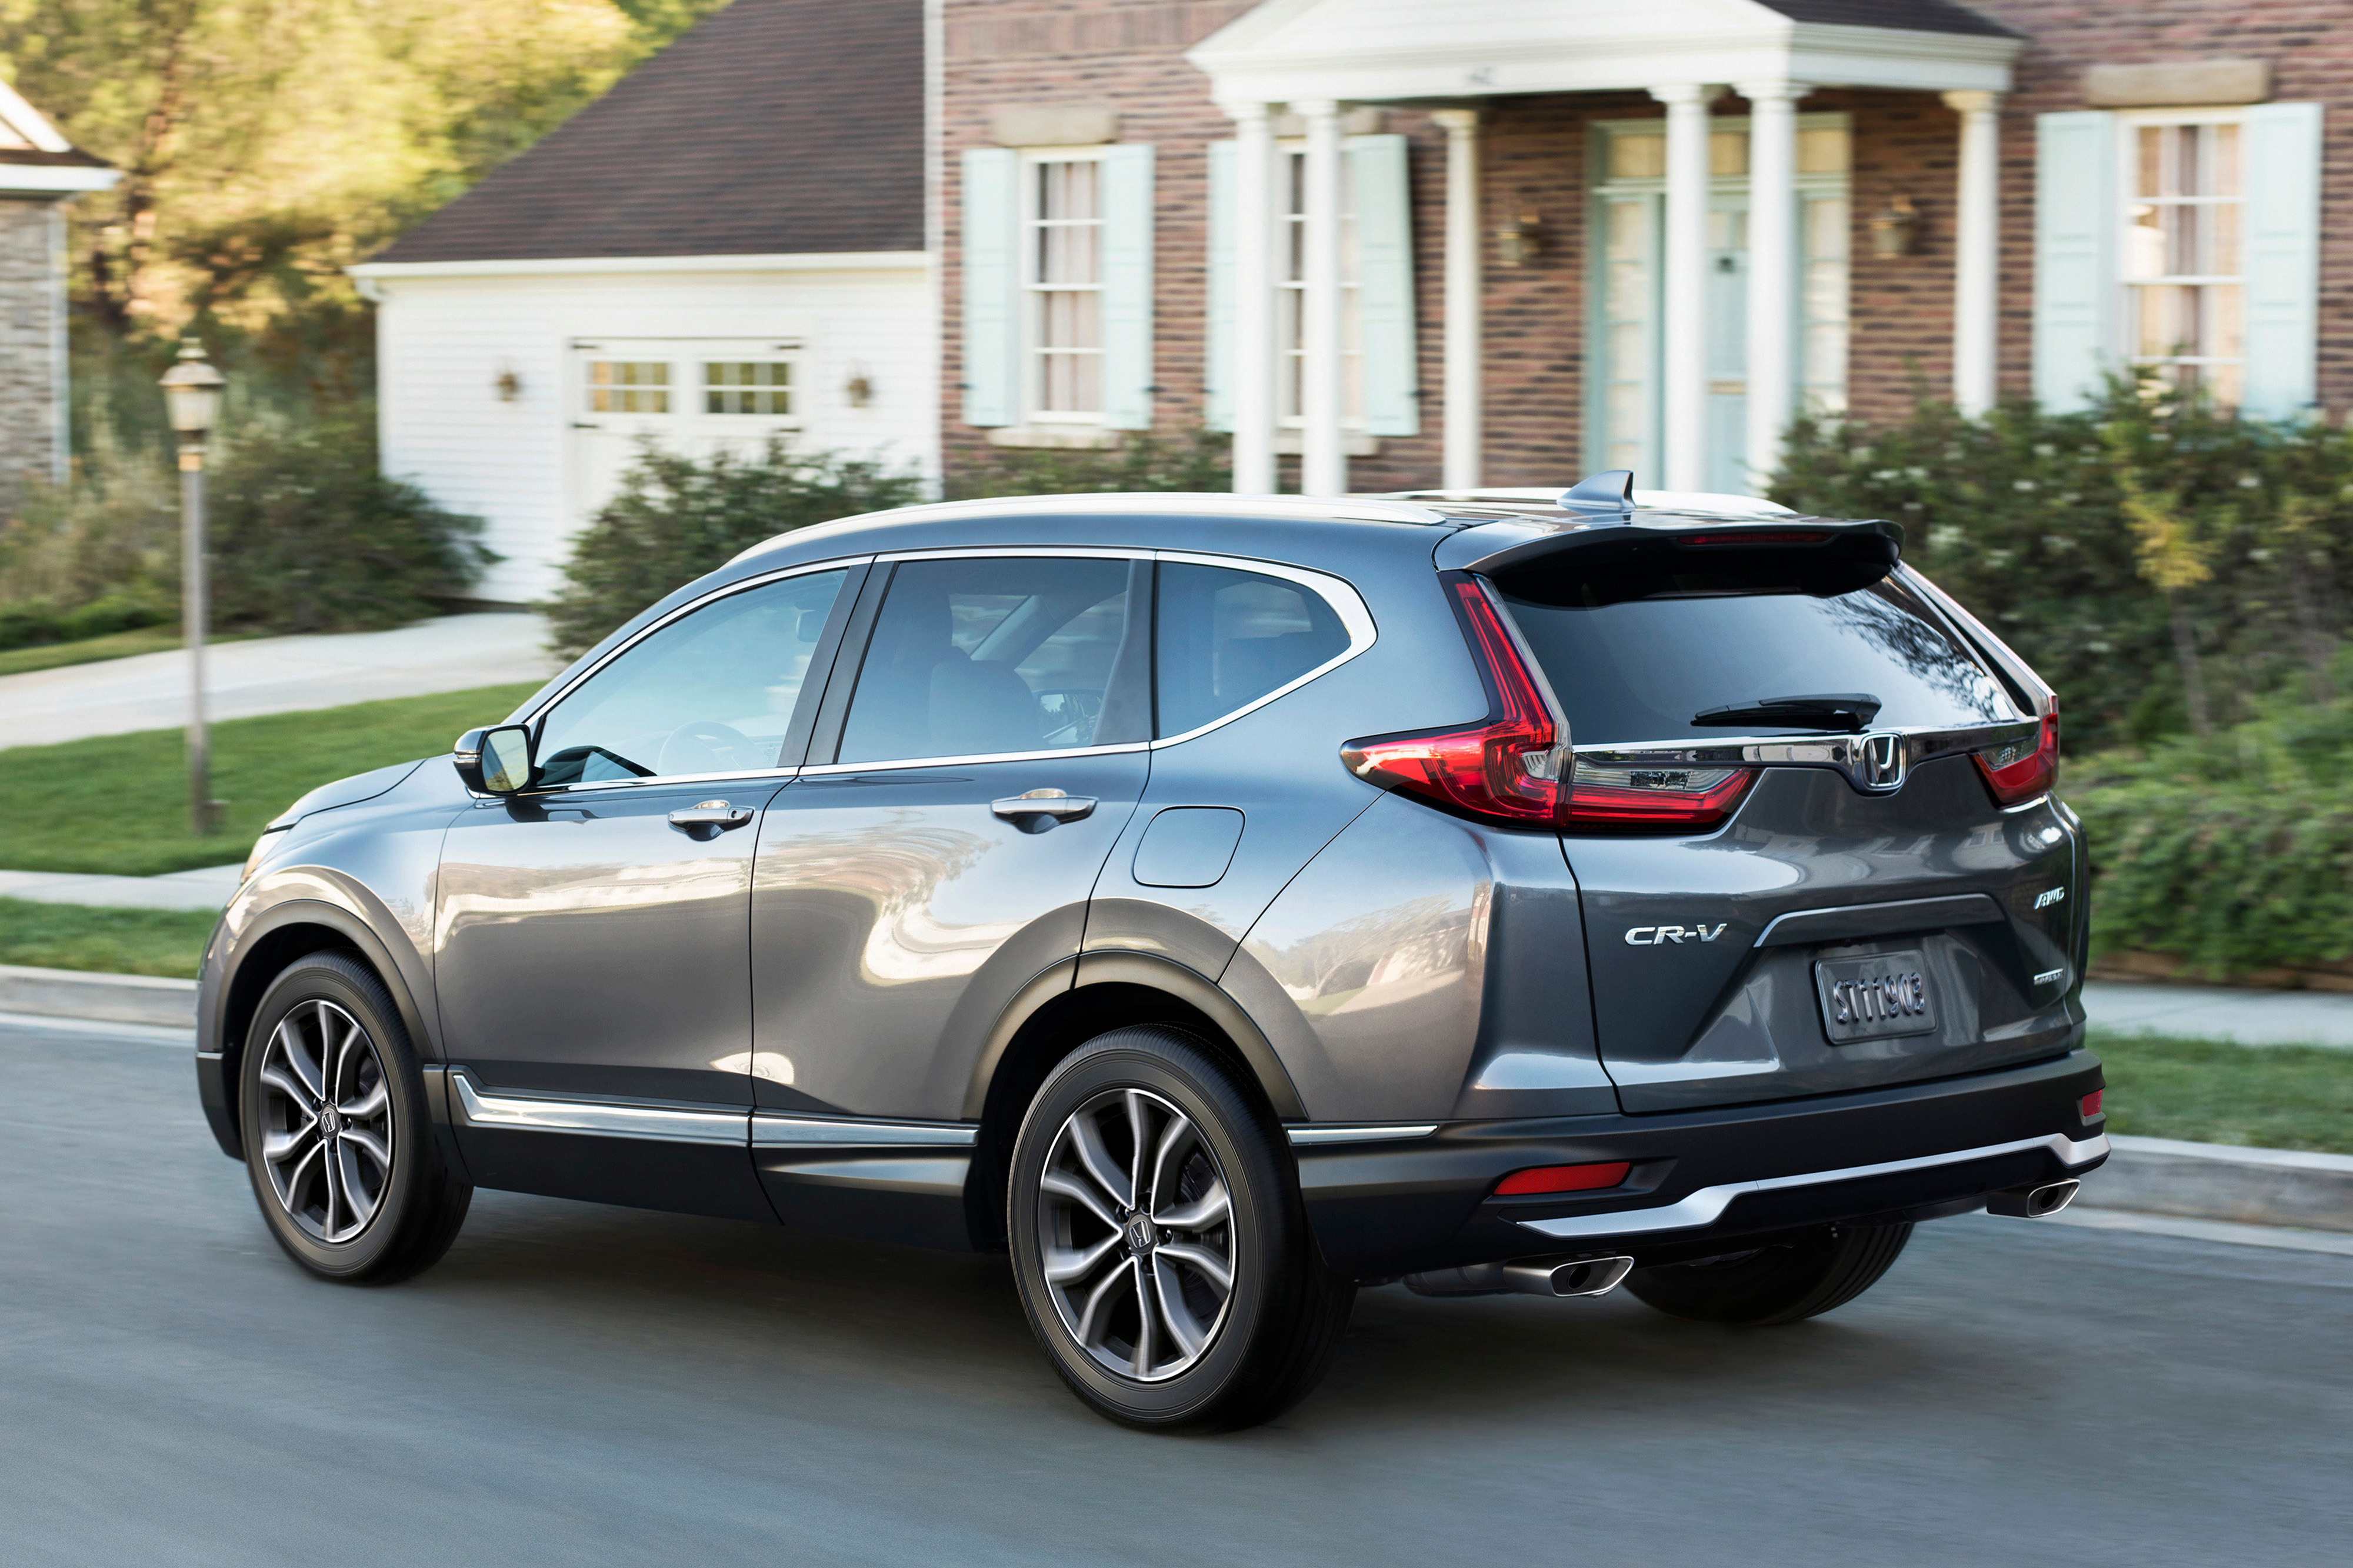 How Do Car Seats Fit in a 2020 Honda CR-V?